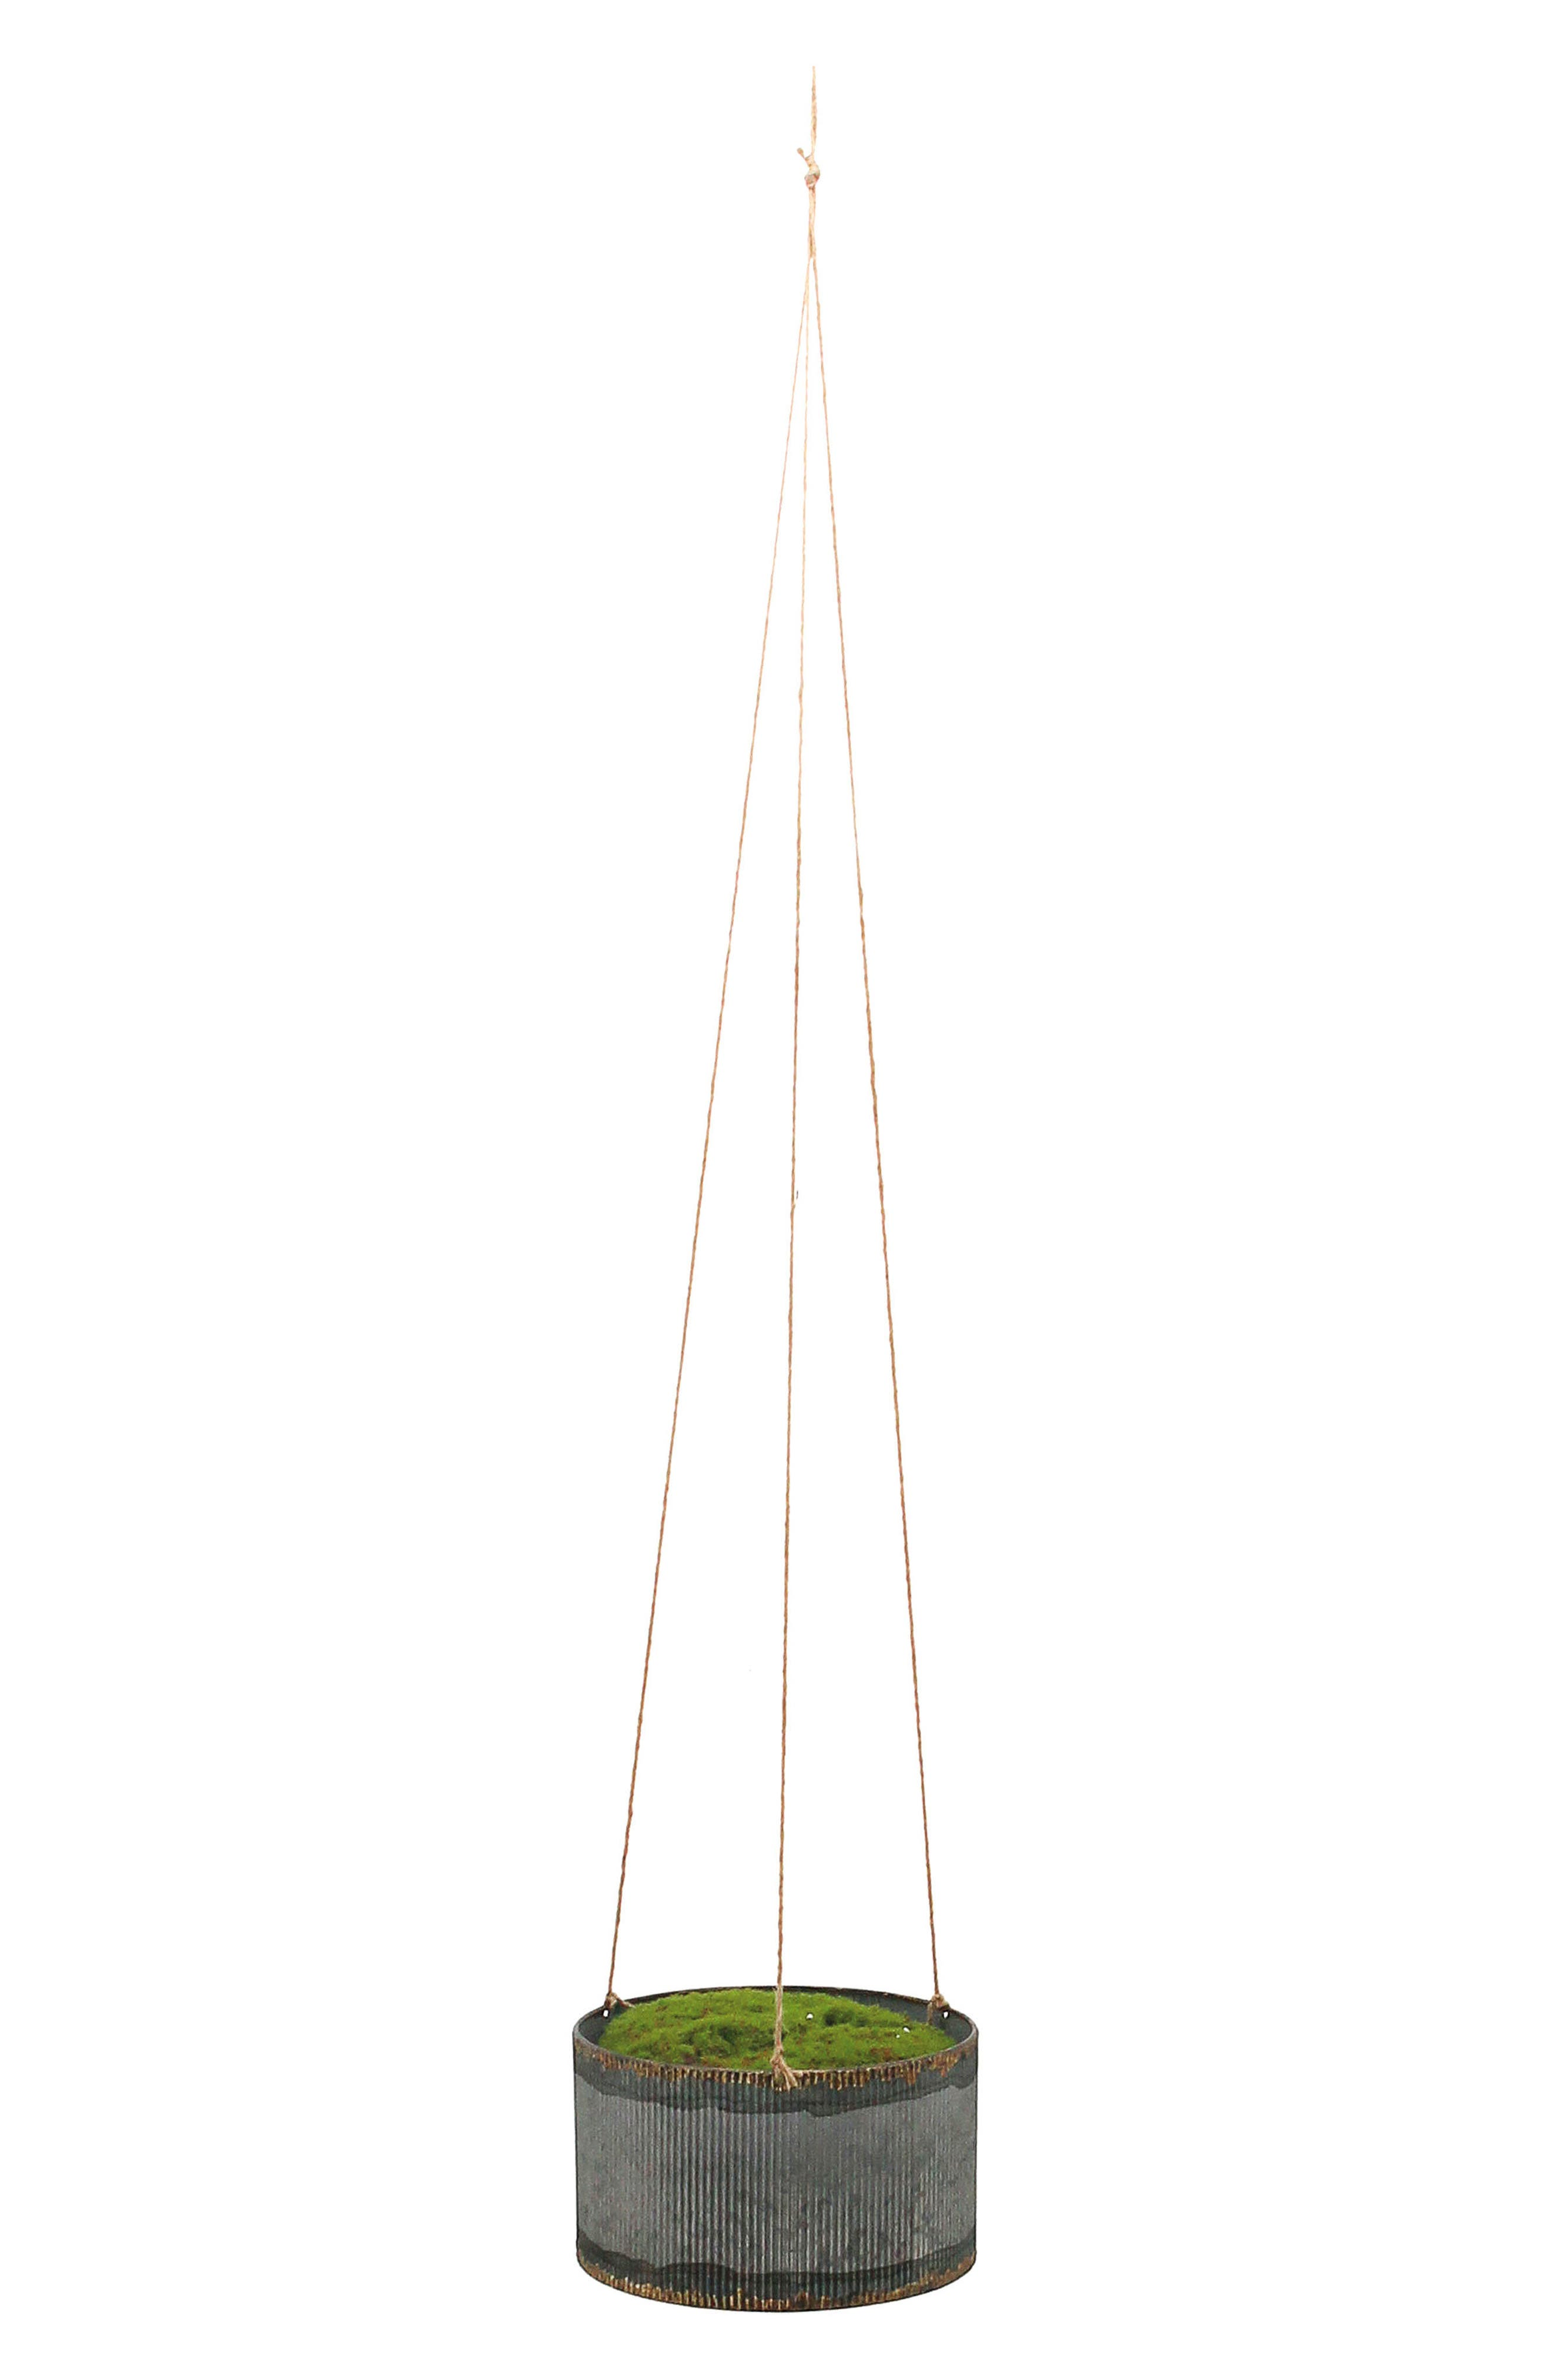 Main Image - Foreside Drummond Small Hanging Planter